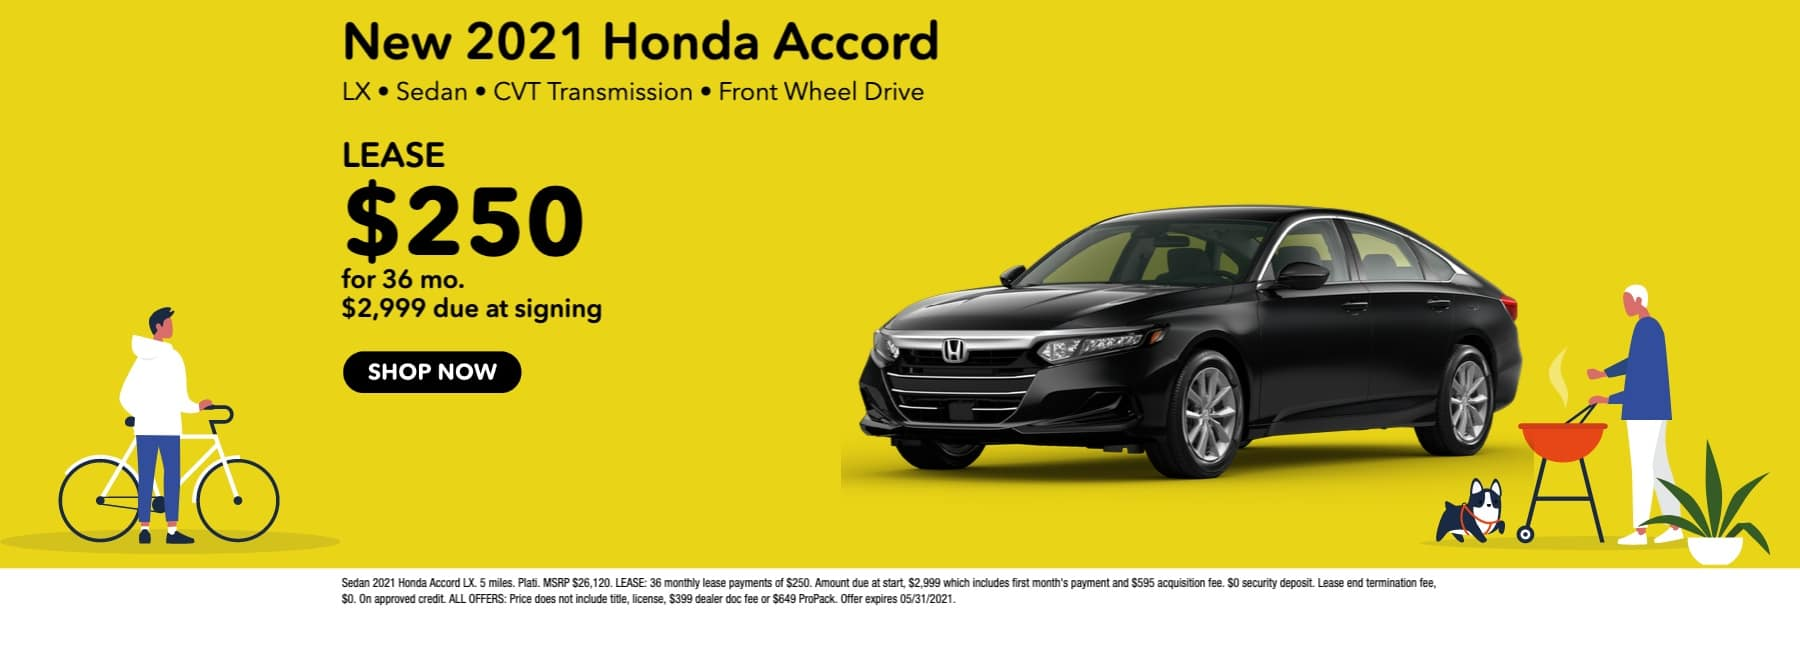 New 2021 Honda Accord LX